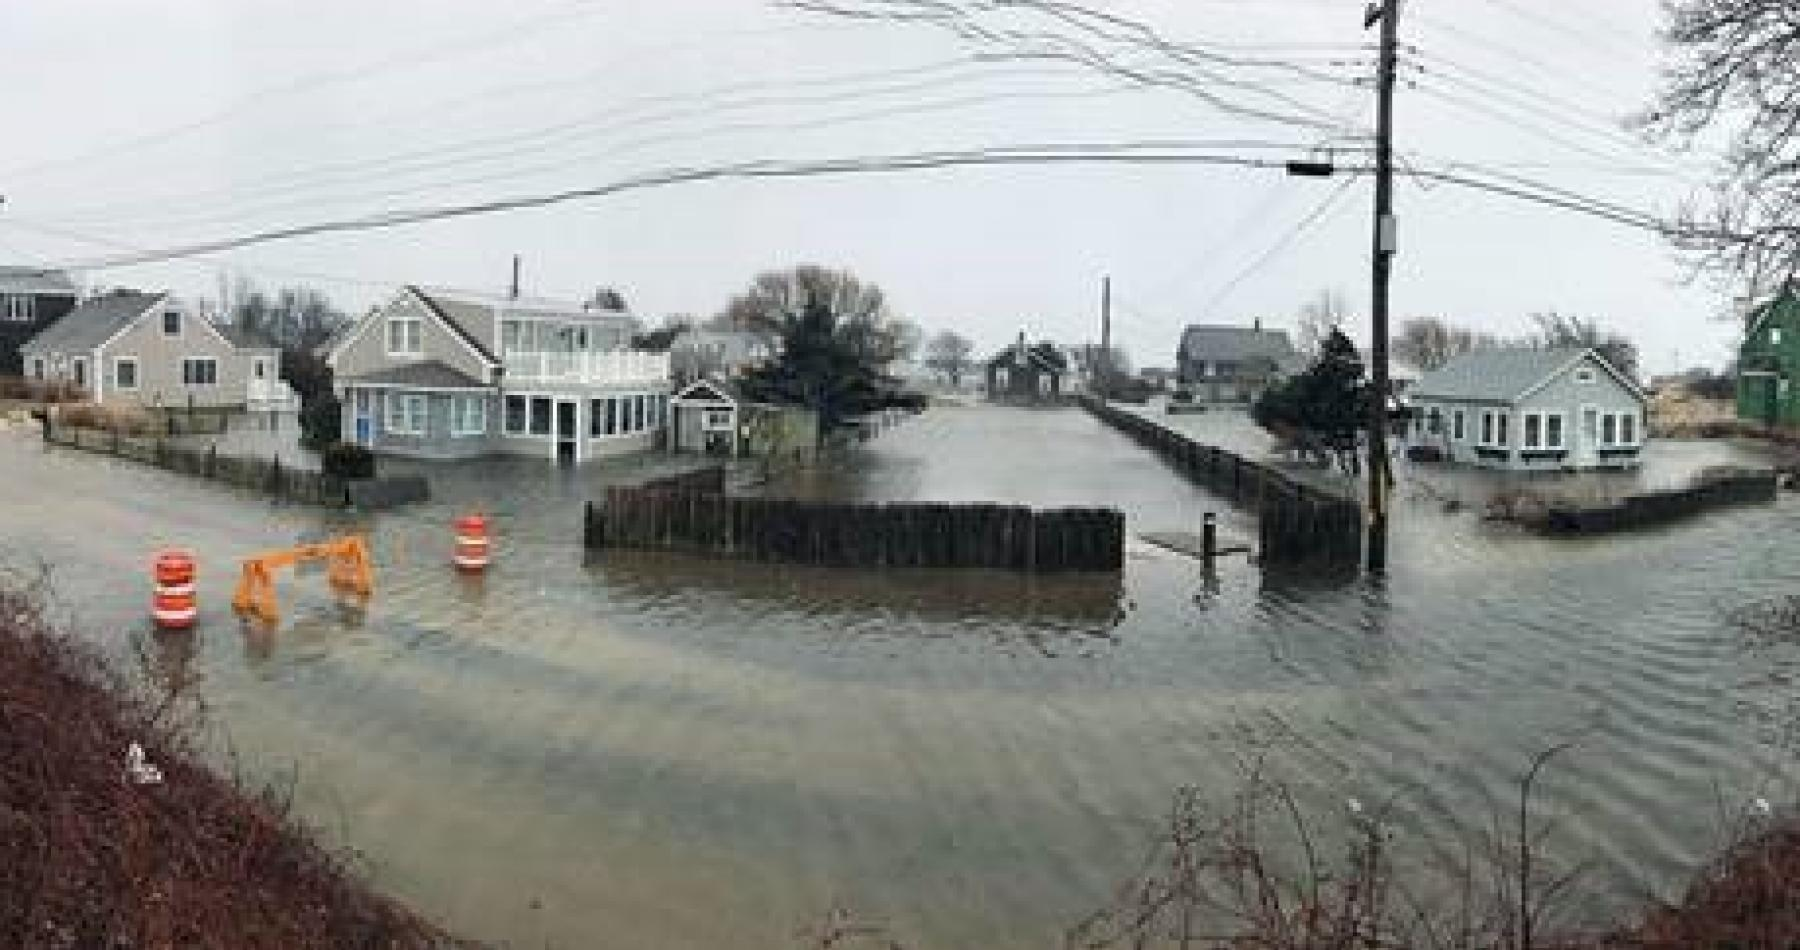 Street flooding in Dennis after 2018 storm. Photo credit: Rebecca Westgate